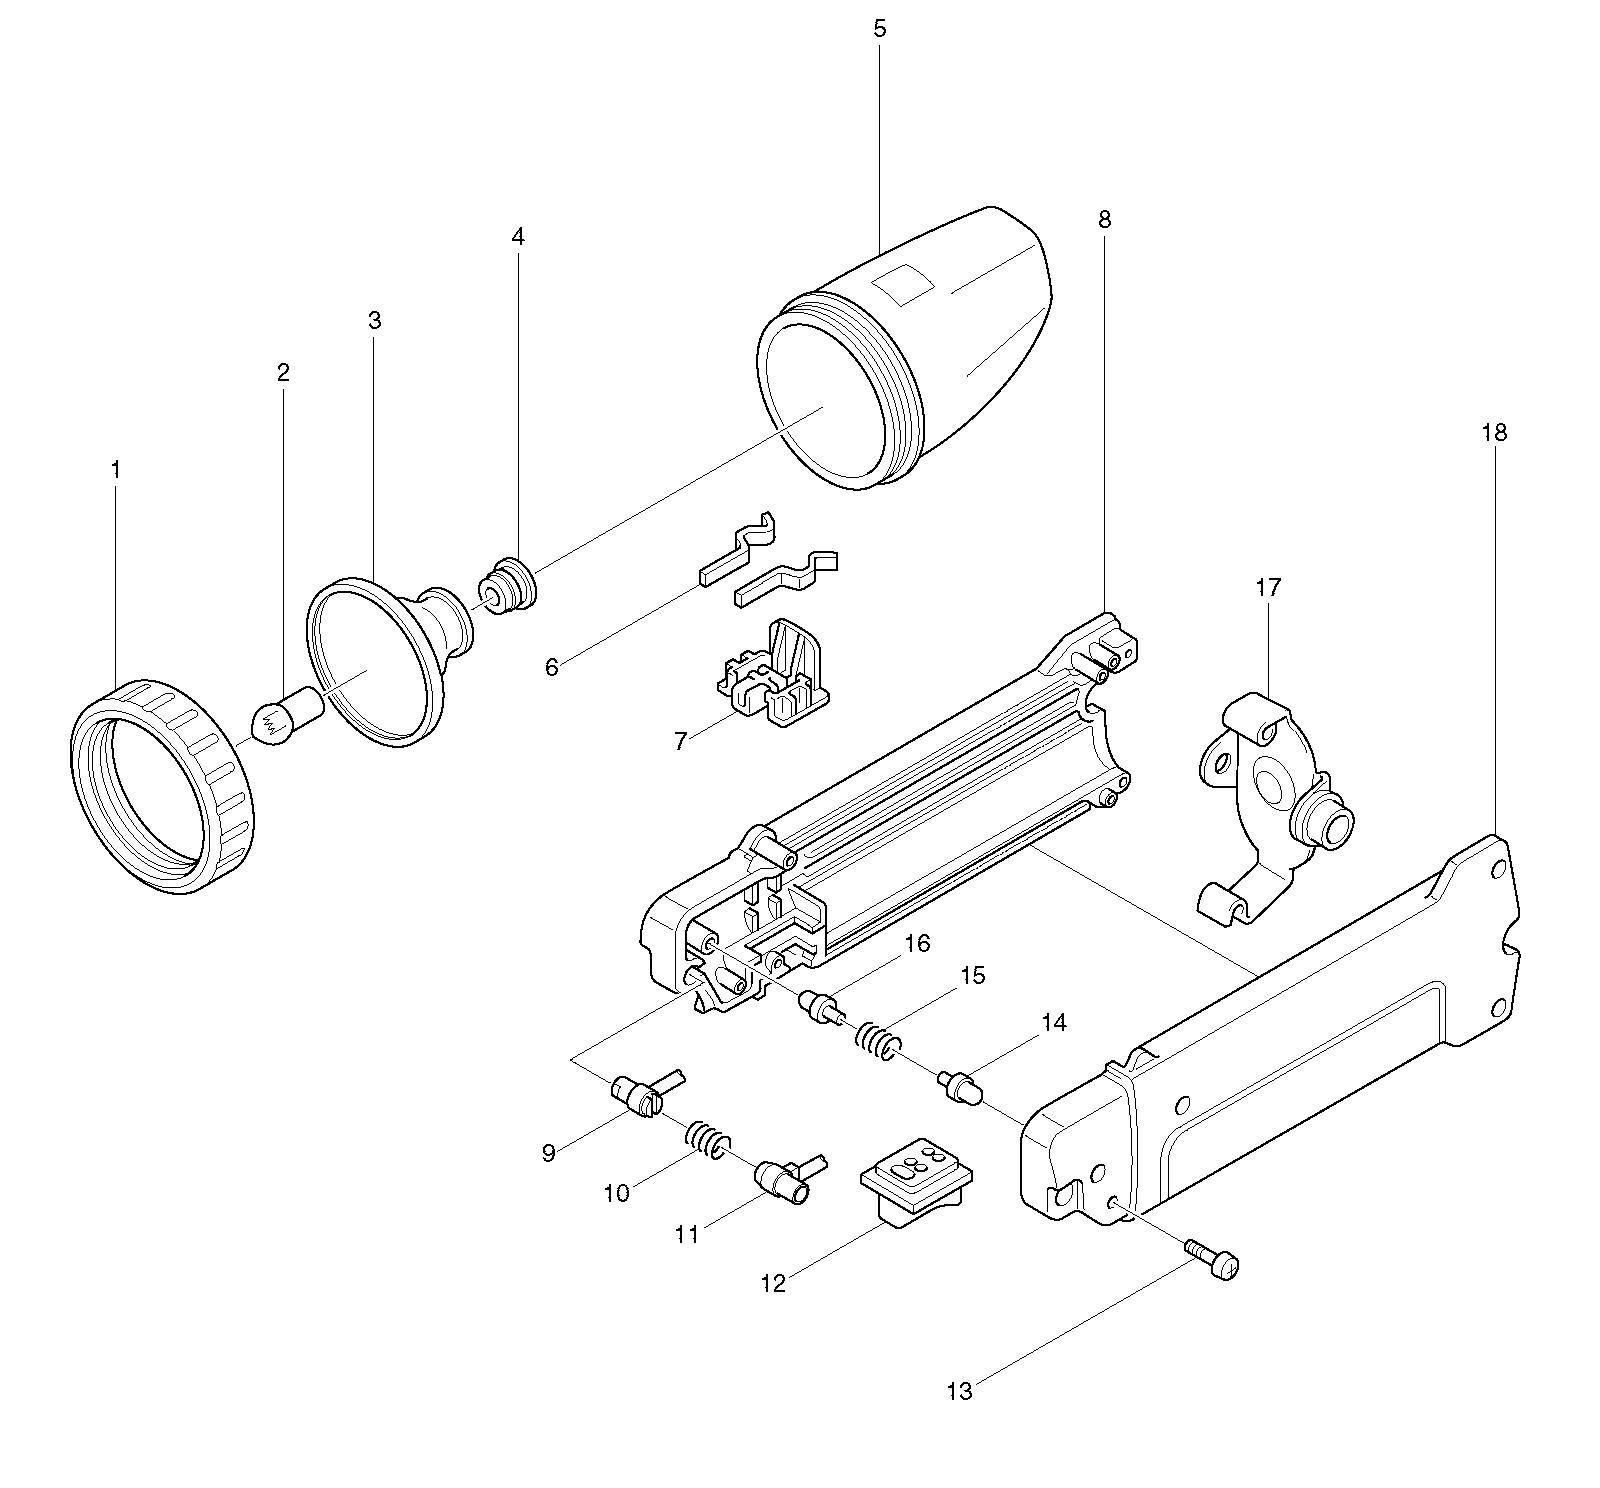 Spares for Makita Ml700 Torch SPARE_ML700 from Power Tool